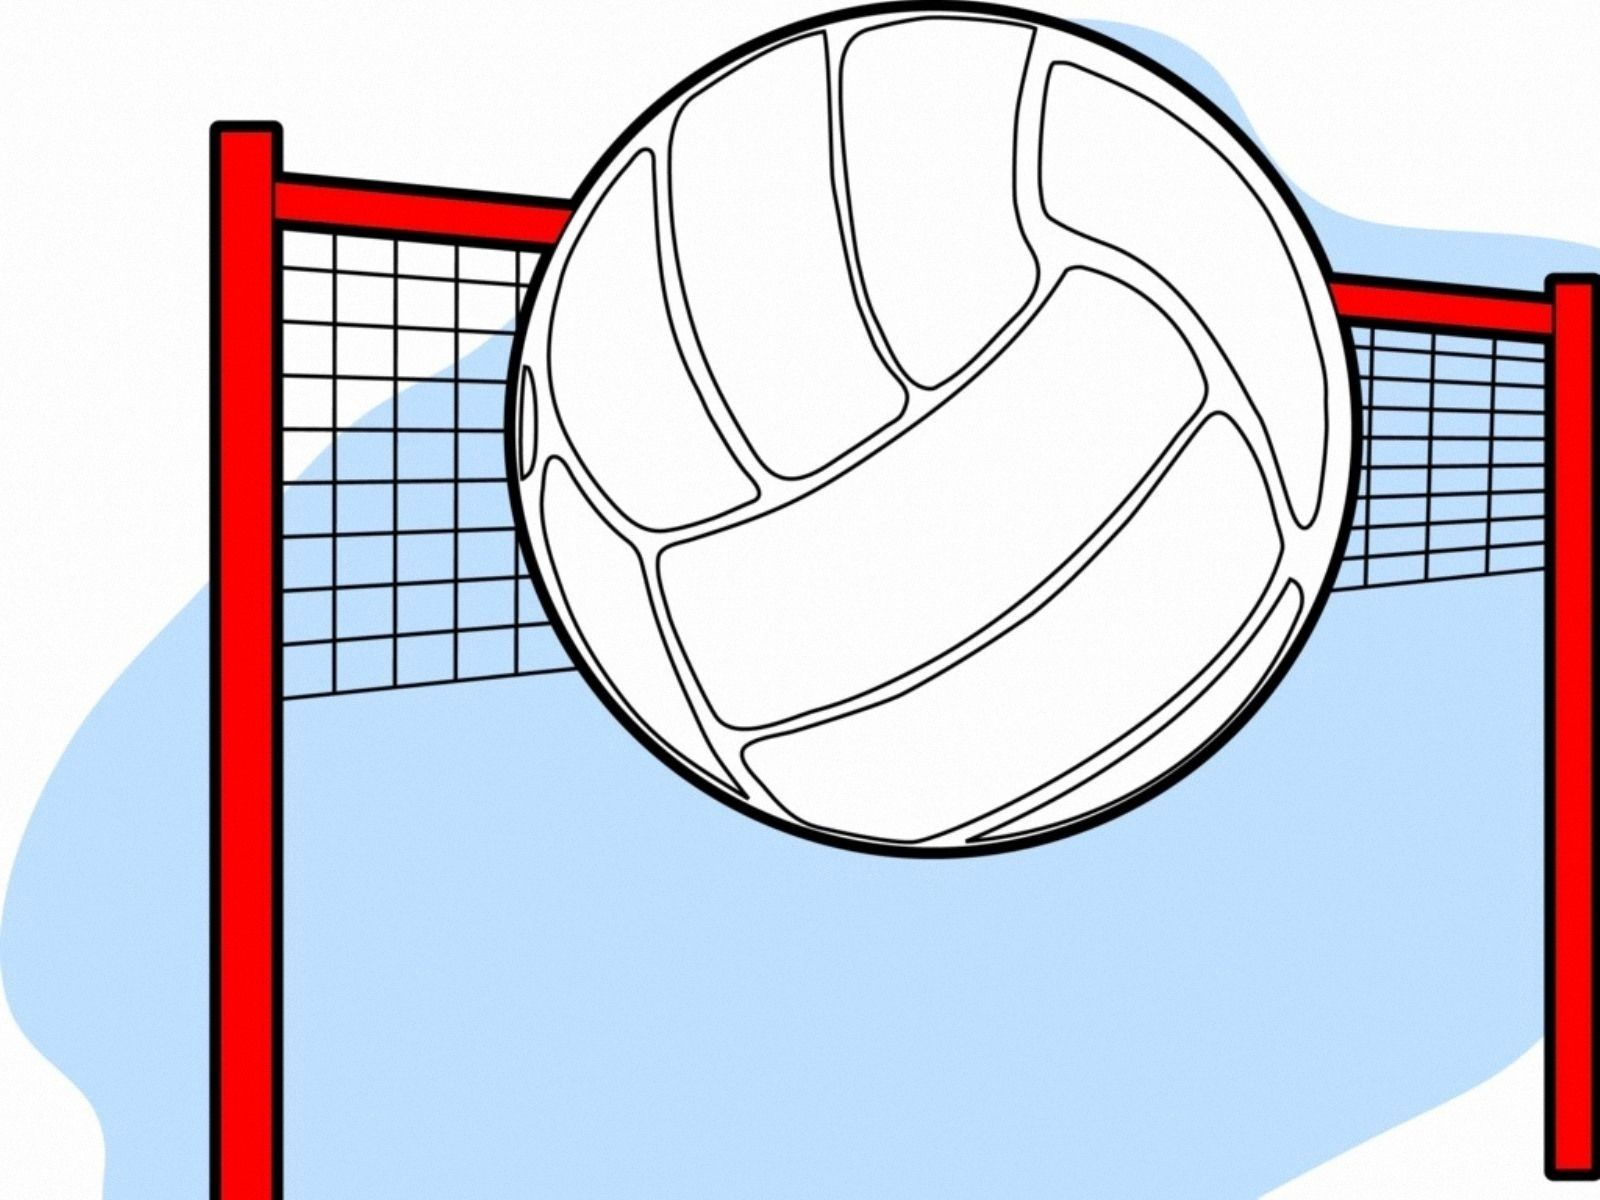 Image Result For Volleyball Images Free Download Volleyball Wallpaper Wallpaper Pictures Volleyball Images